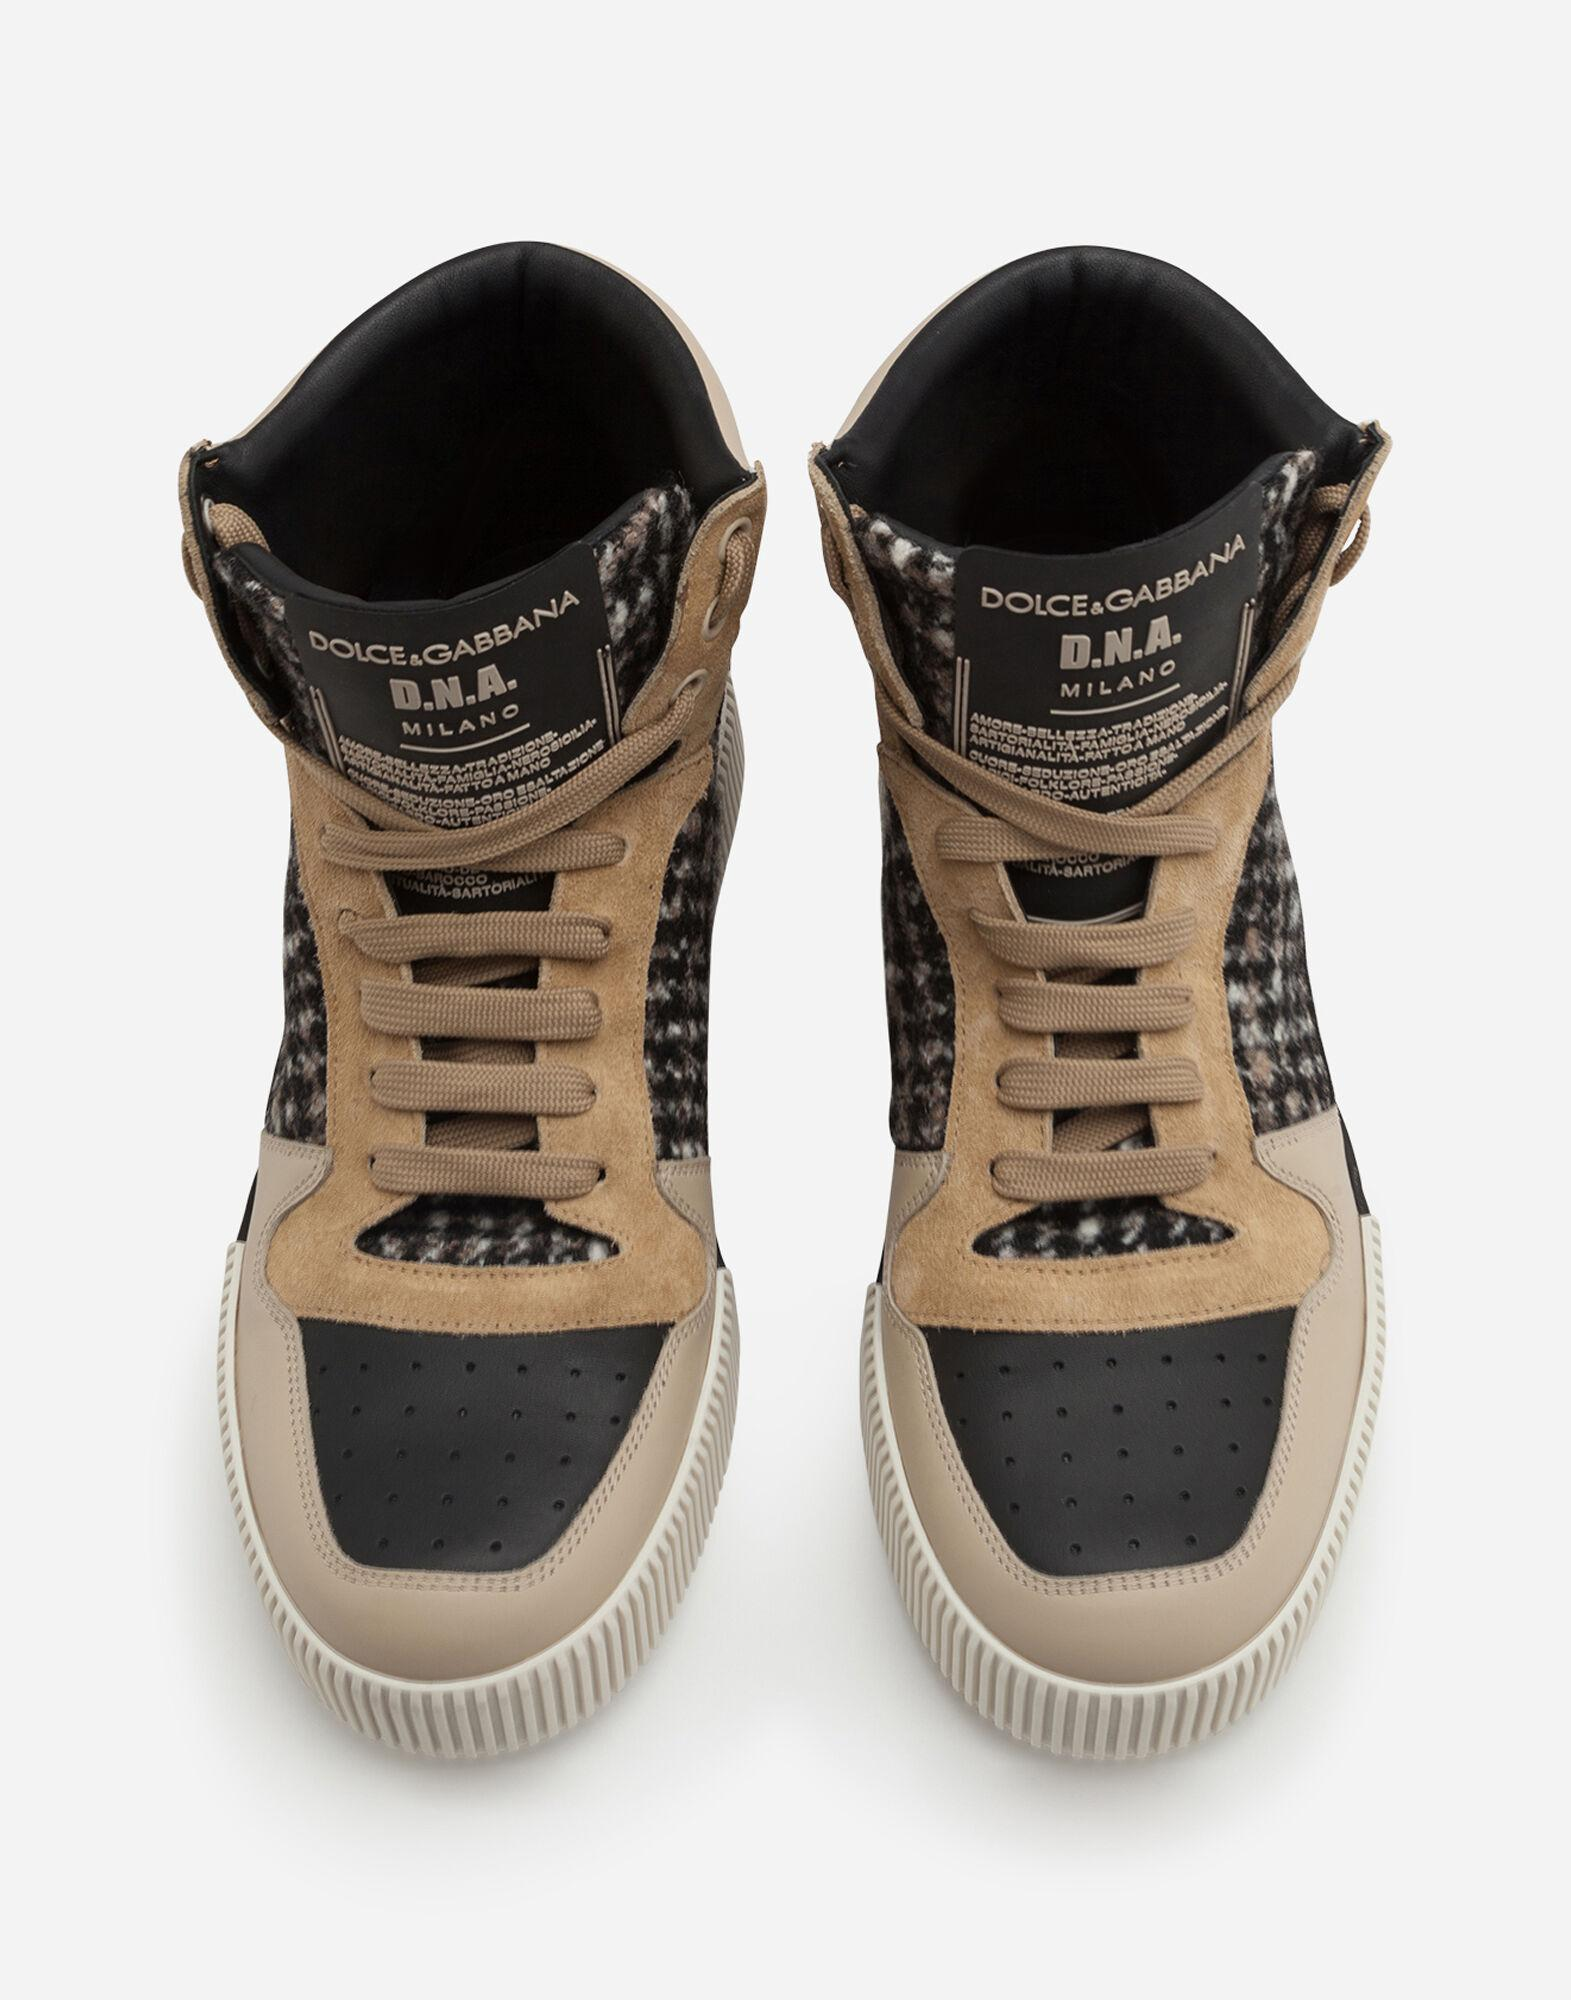 Miami high top sneakers in houndstooth and nappa leather 3